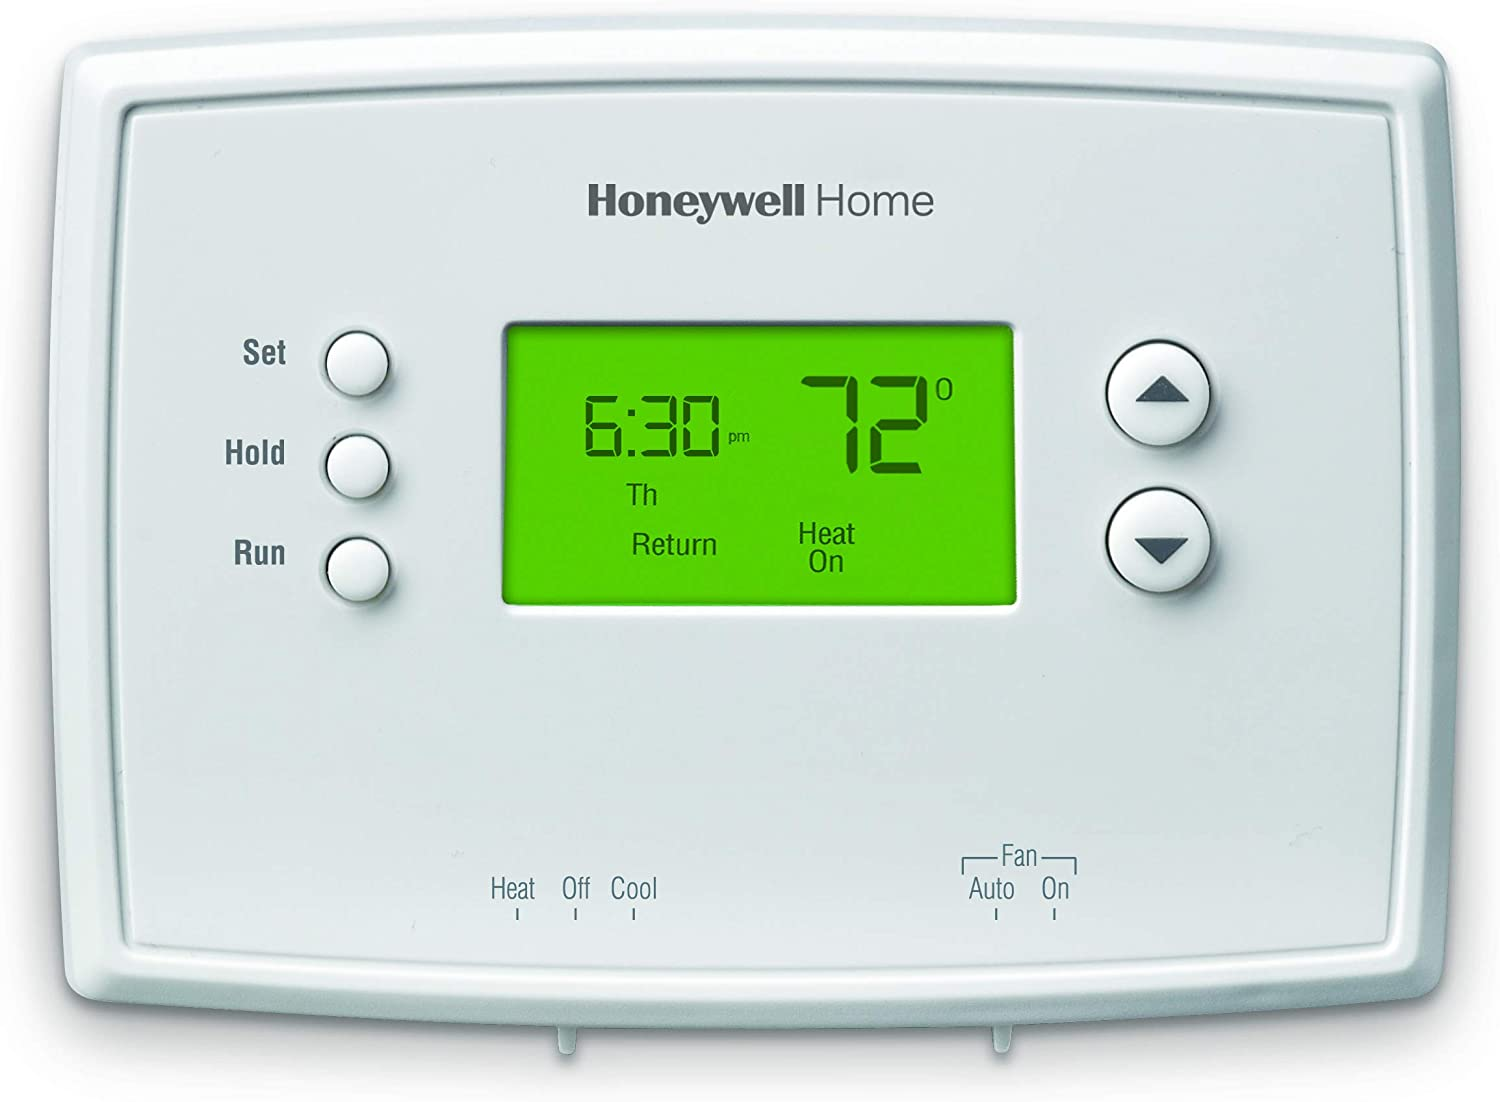 Honeywell Home RTH2510B1018 White Max Max 49% OFF 90% OFF Thermostat